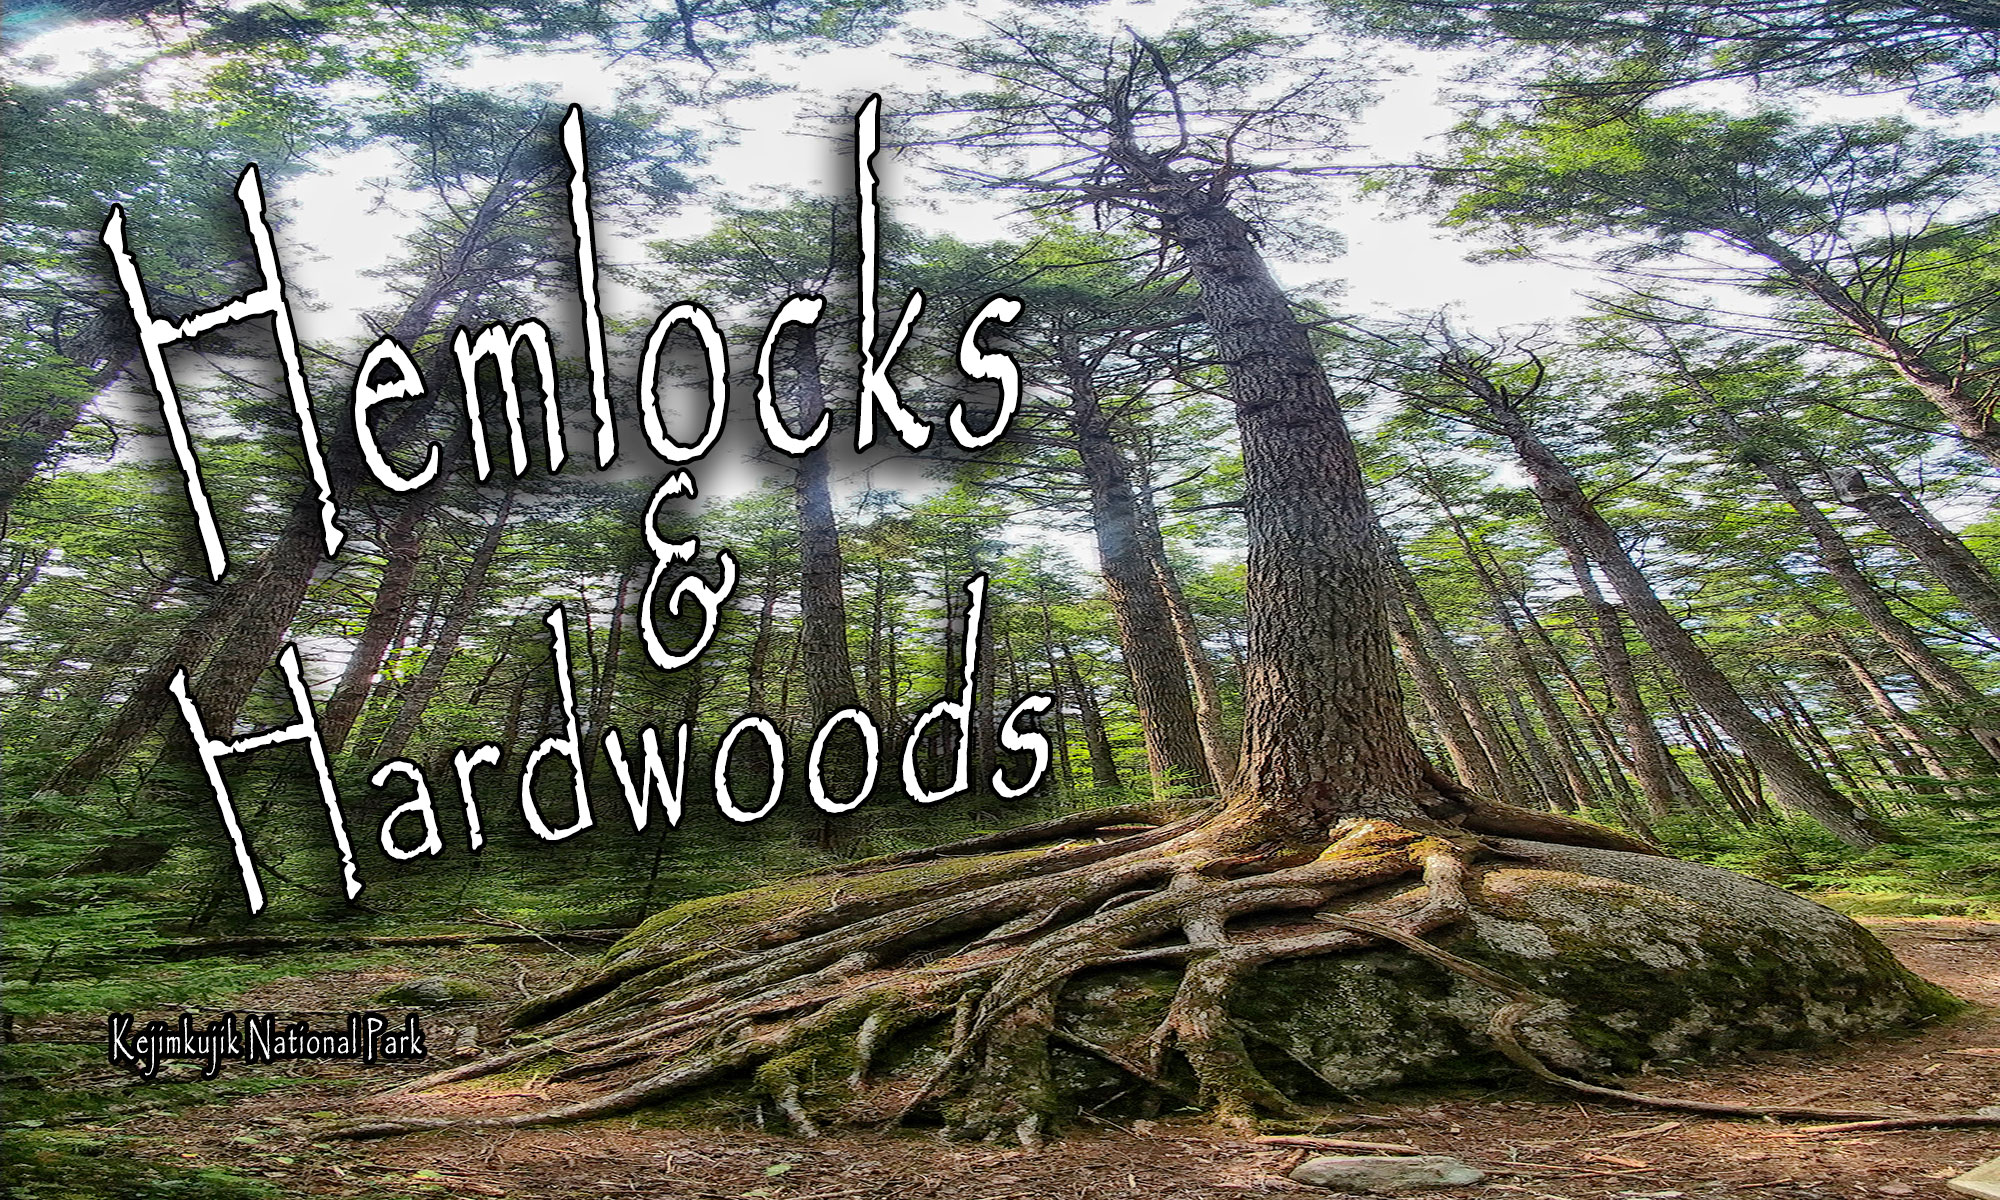 Hemlocks and Hardwoods Hiking Trail